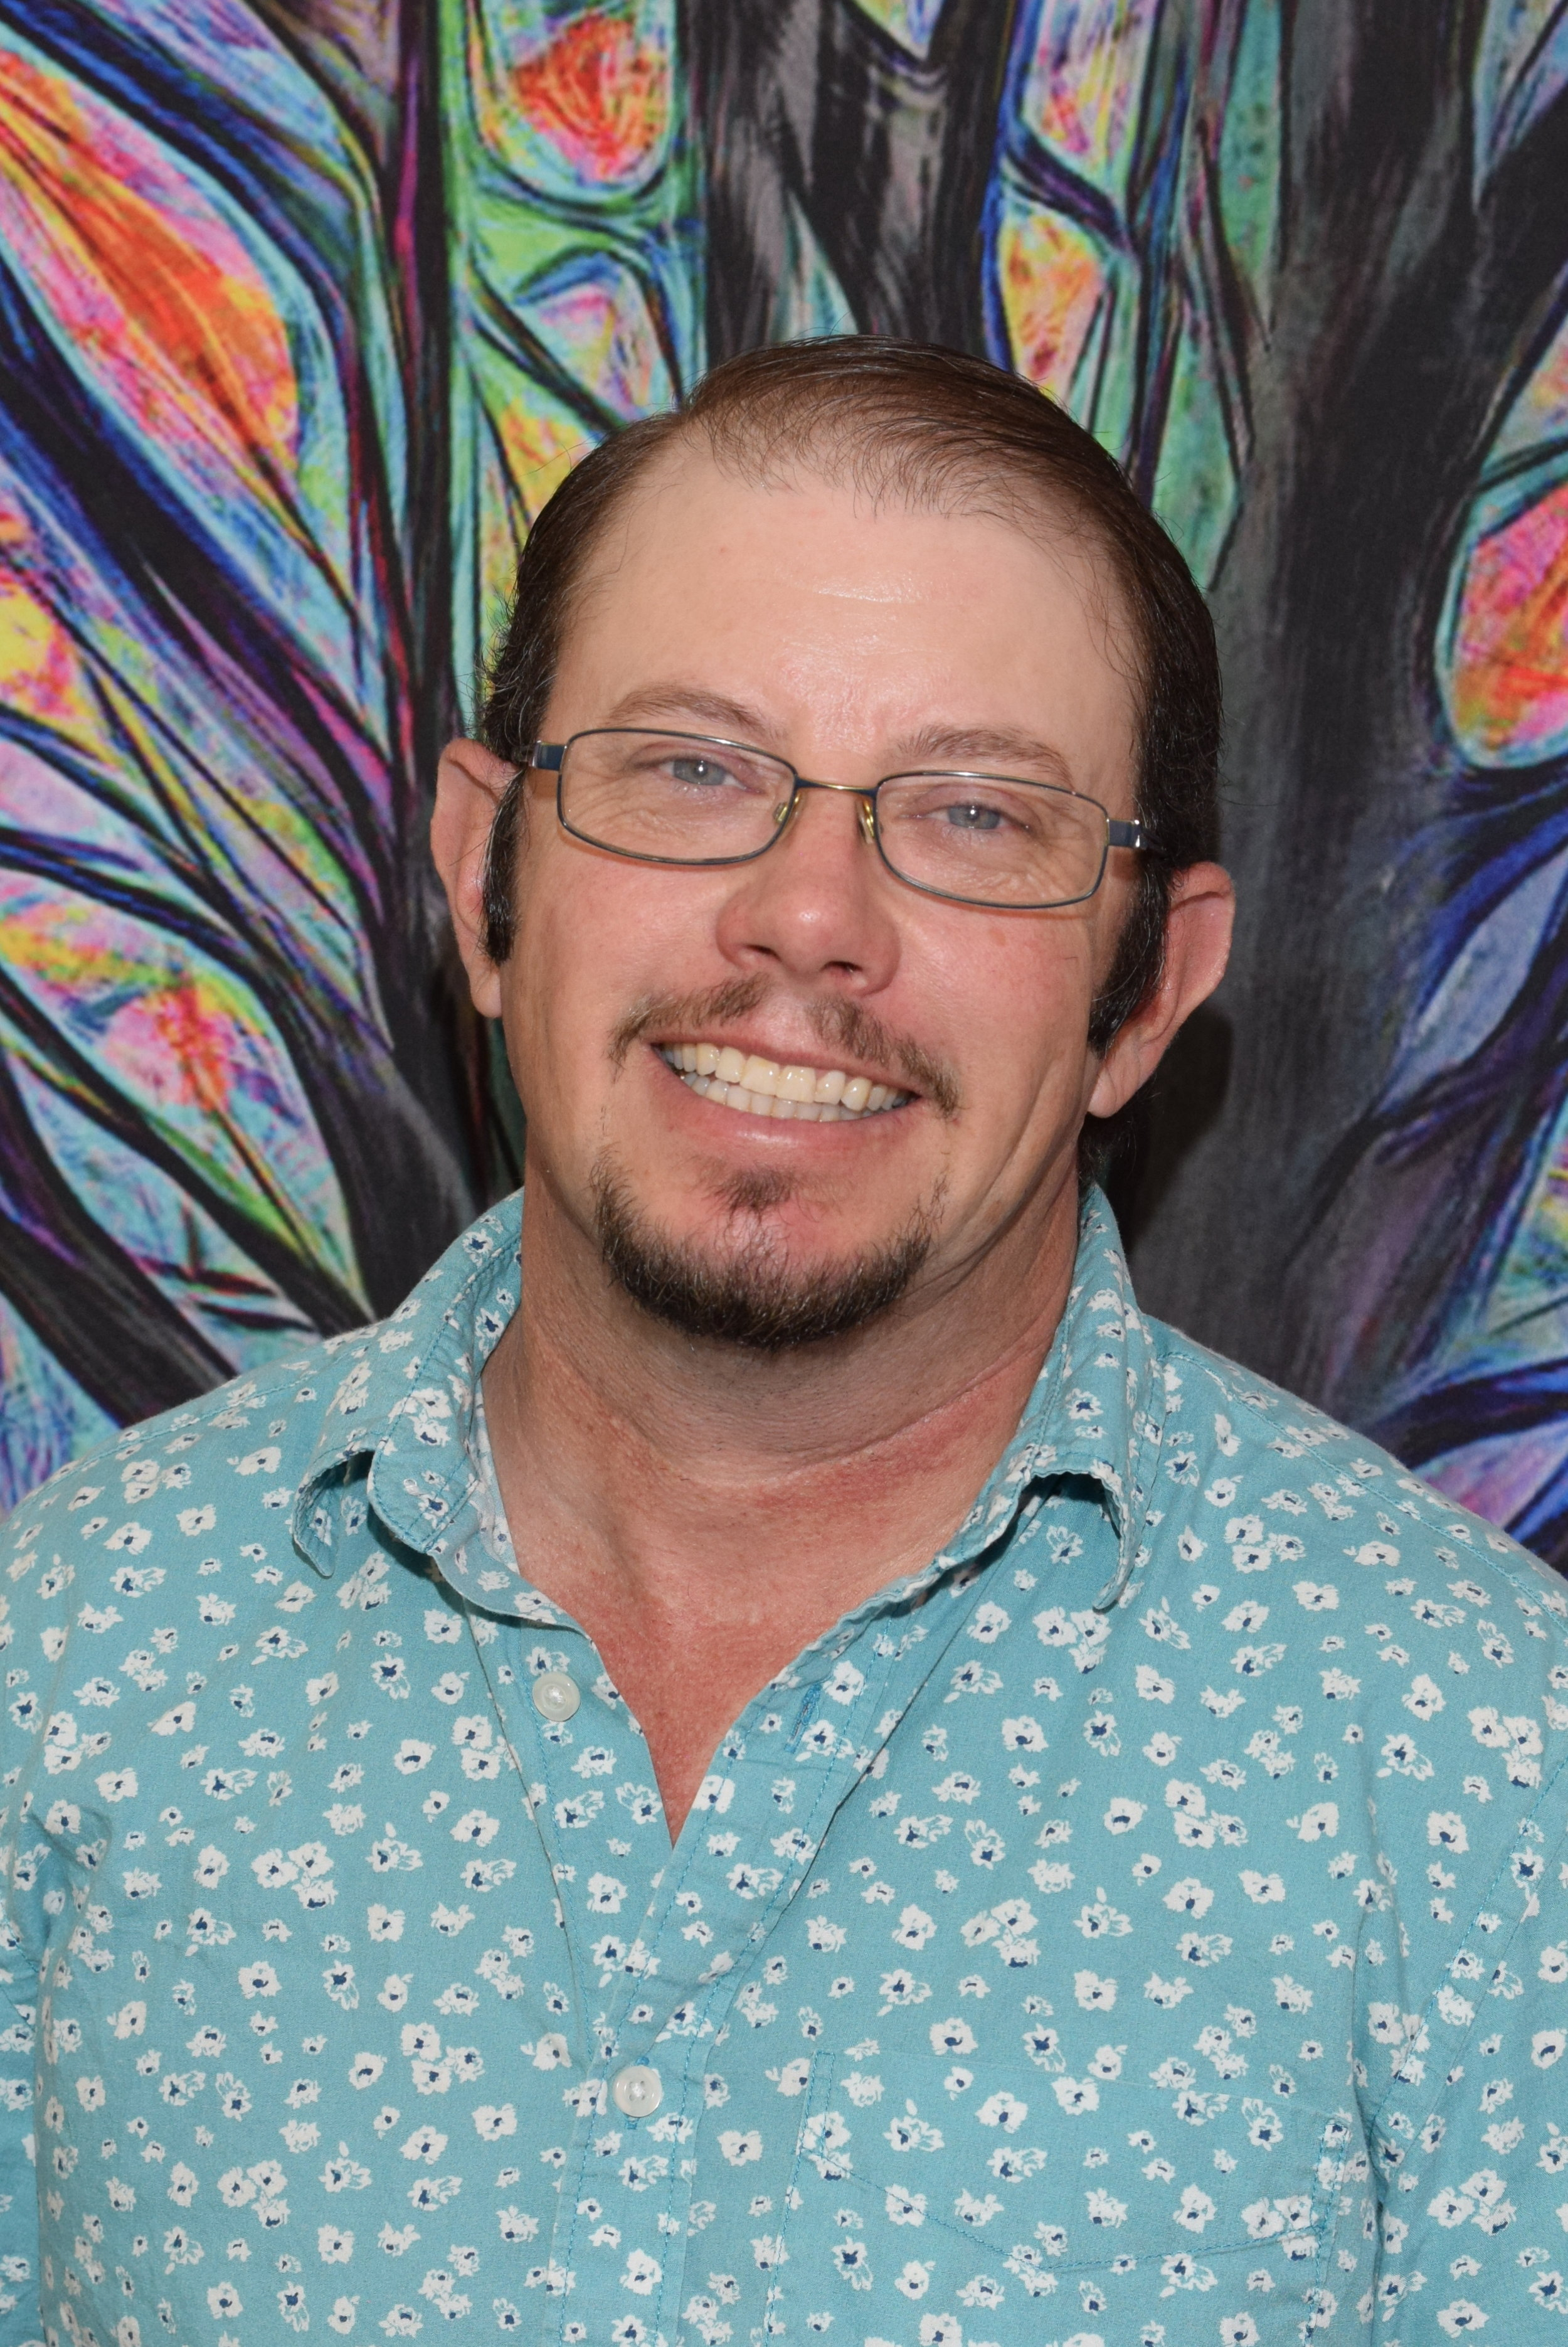 Conner Wenzel - Board Chair - conner@stonewallchico.orgConner (he/him) has been working with the Stonewall Alliance Center for many years. From facilitating multiple support groups here in the center, to assisting with the set up of Stonewall Alliance events, facilitating workshops for professionals, and being a supportive friend to many in the Chico Community, we are thrilled to have Conner as our Board Chair.